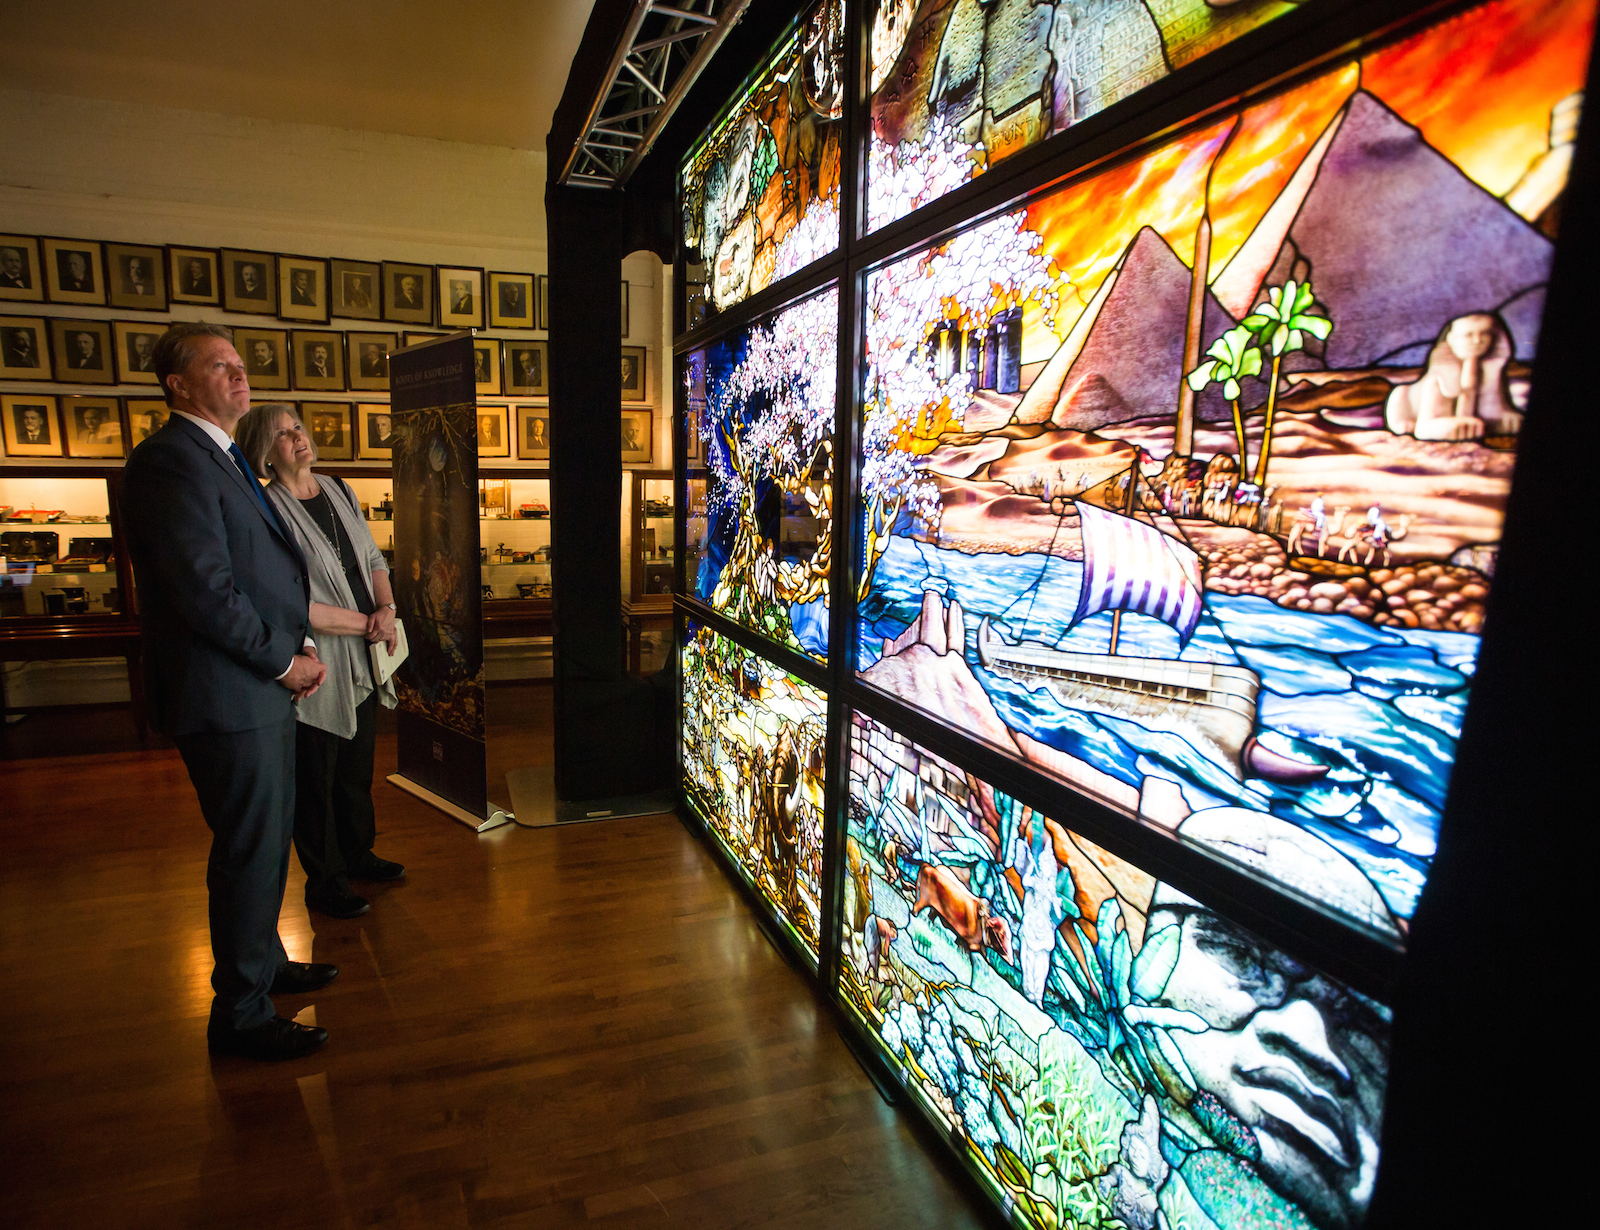 """Lecture attendees examine panels from """"Roots of Knowledge,"""" a stained glass exhibit headed for a permanent home at UVU Library, while on display in Manhattan this week. (Photo courtesy of UVU Marketing)"""